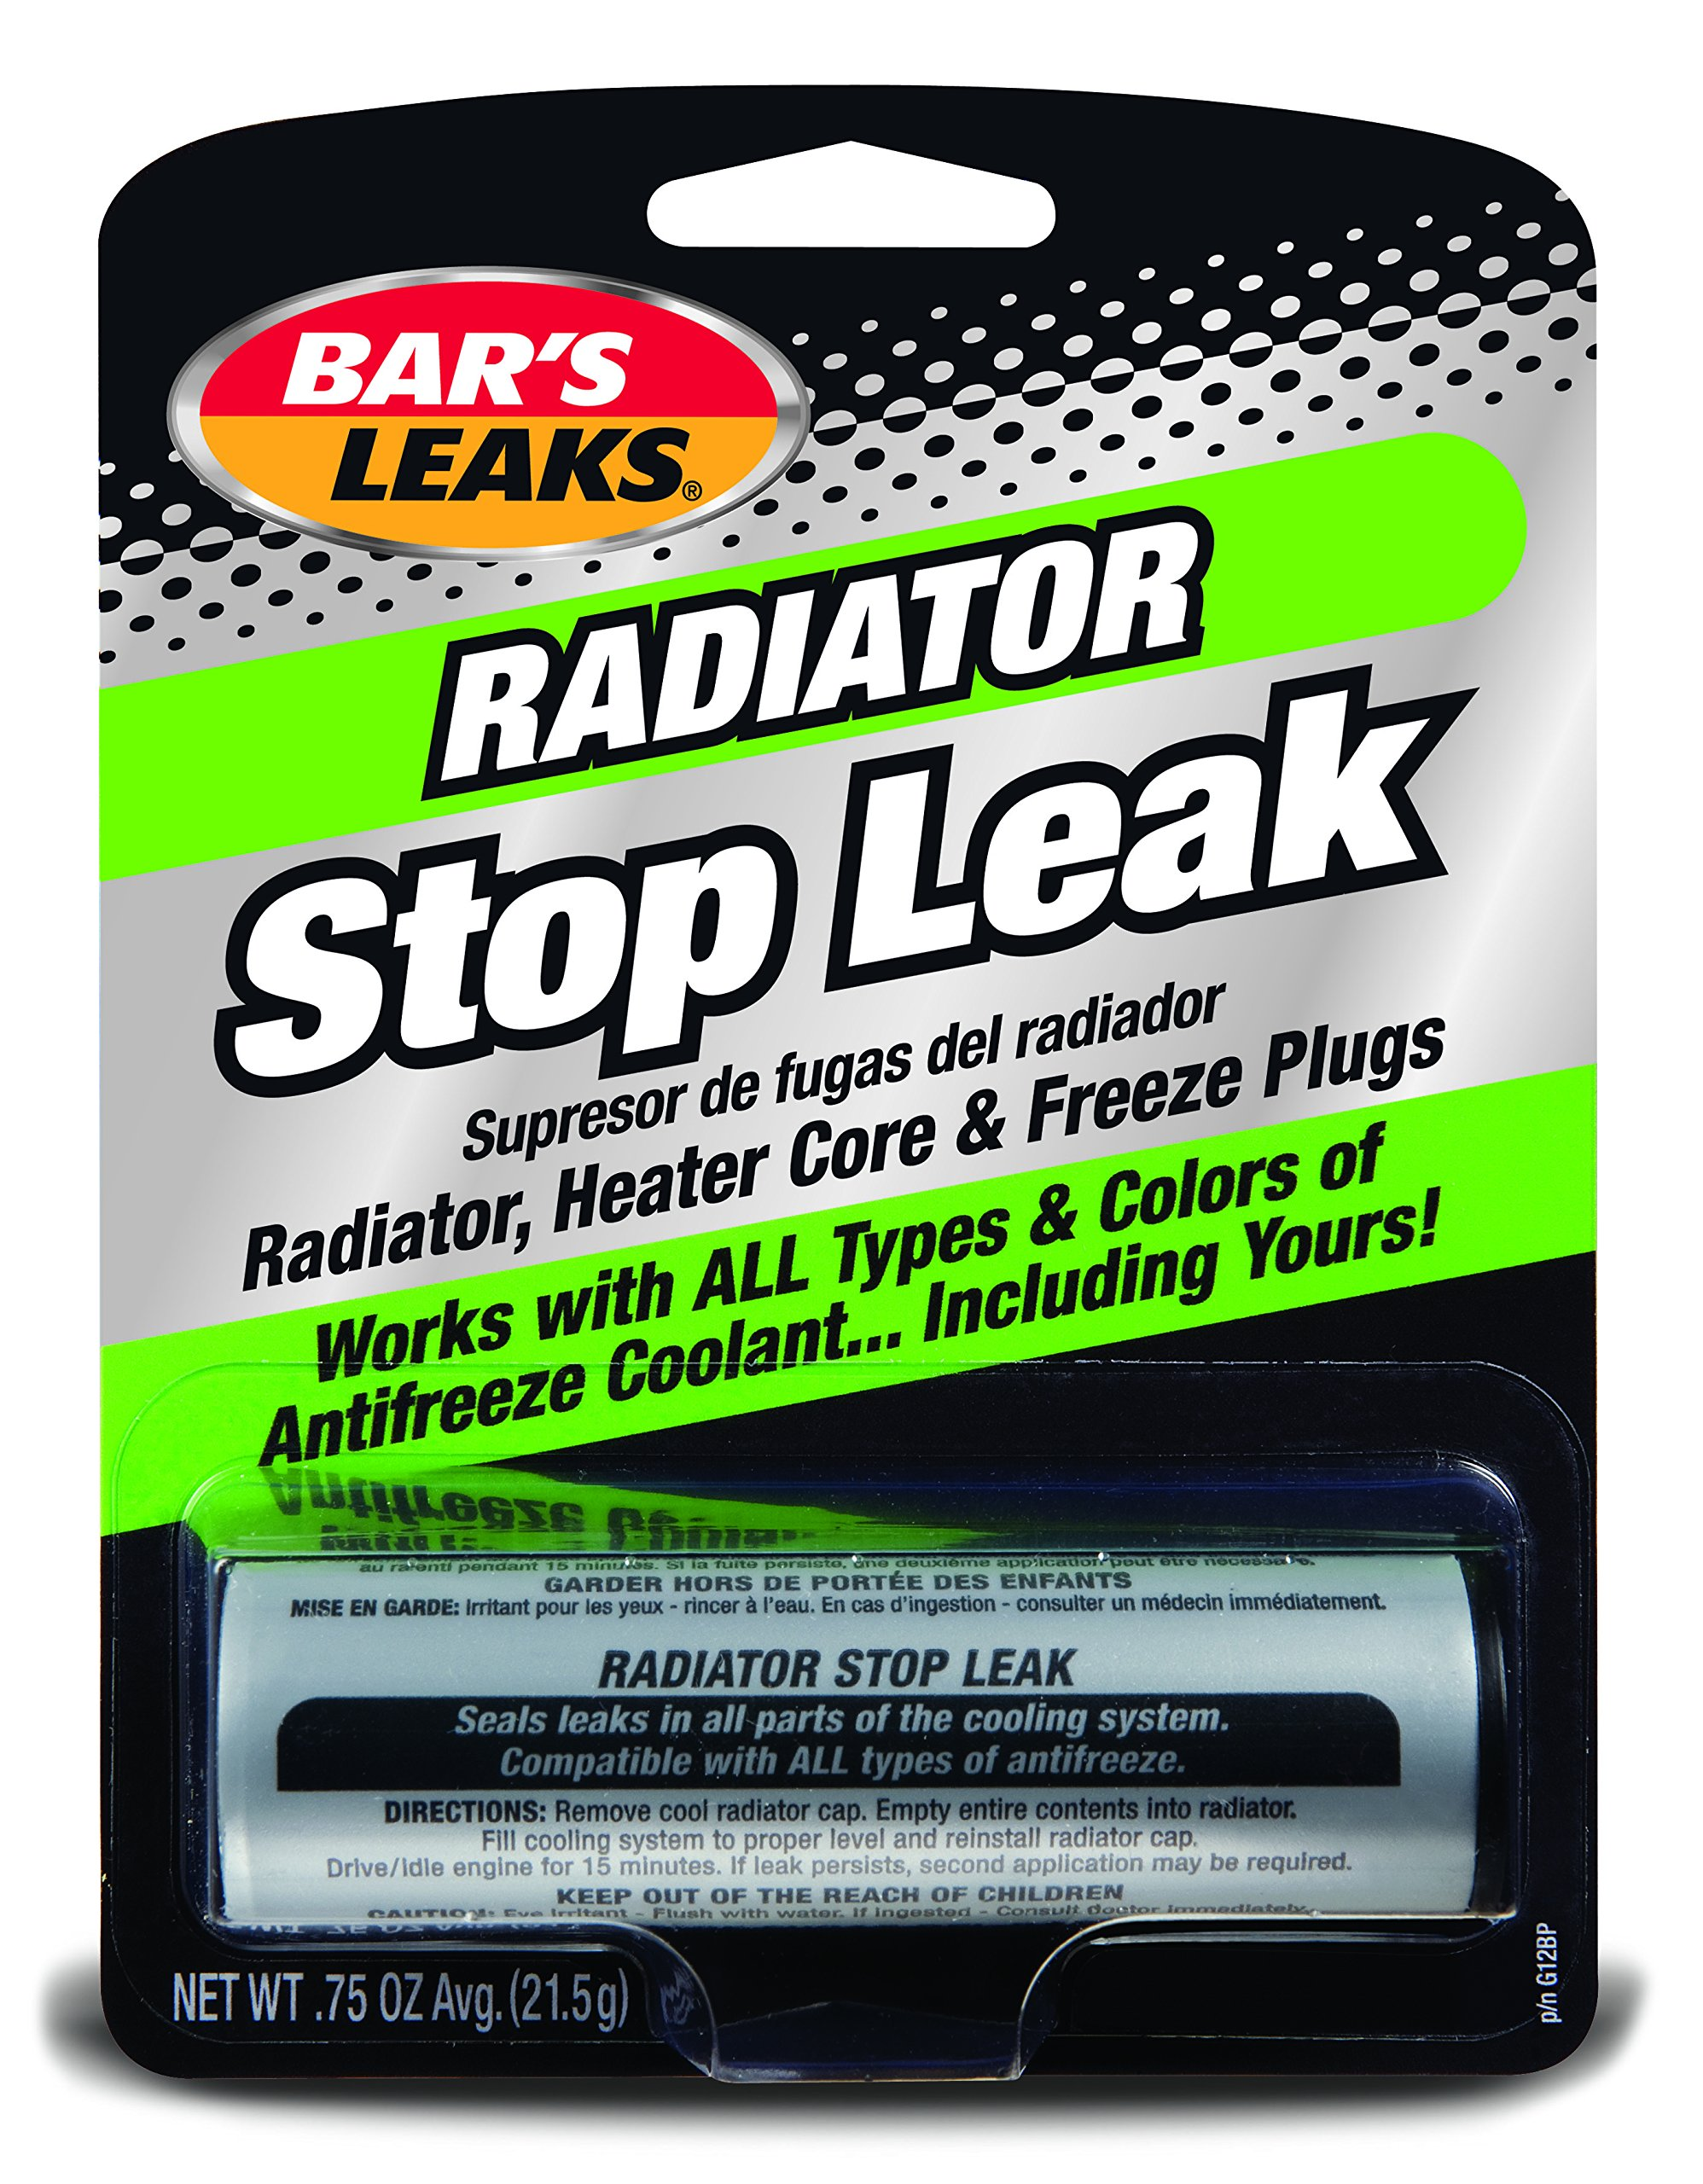 Bar's Leaks G12BP-7PK Radiator Stop Leak Powder - 0.75 oz., (Pack of 7) by Bar's Products